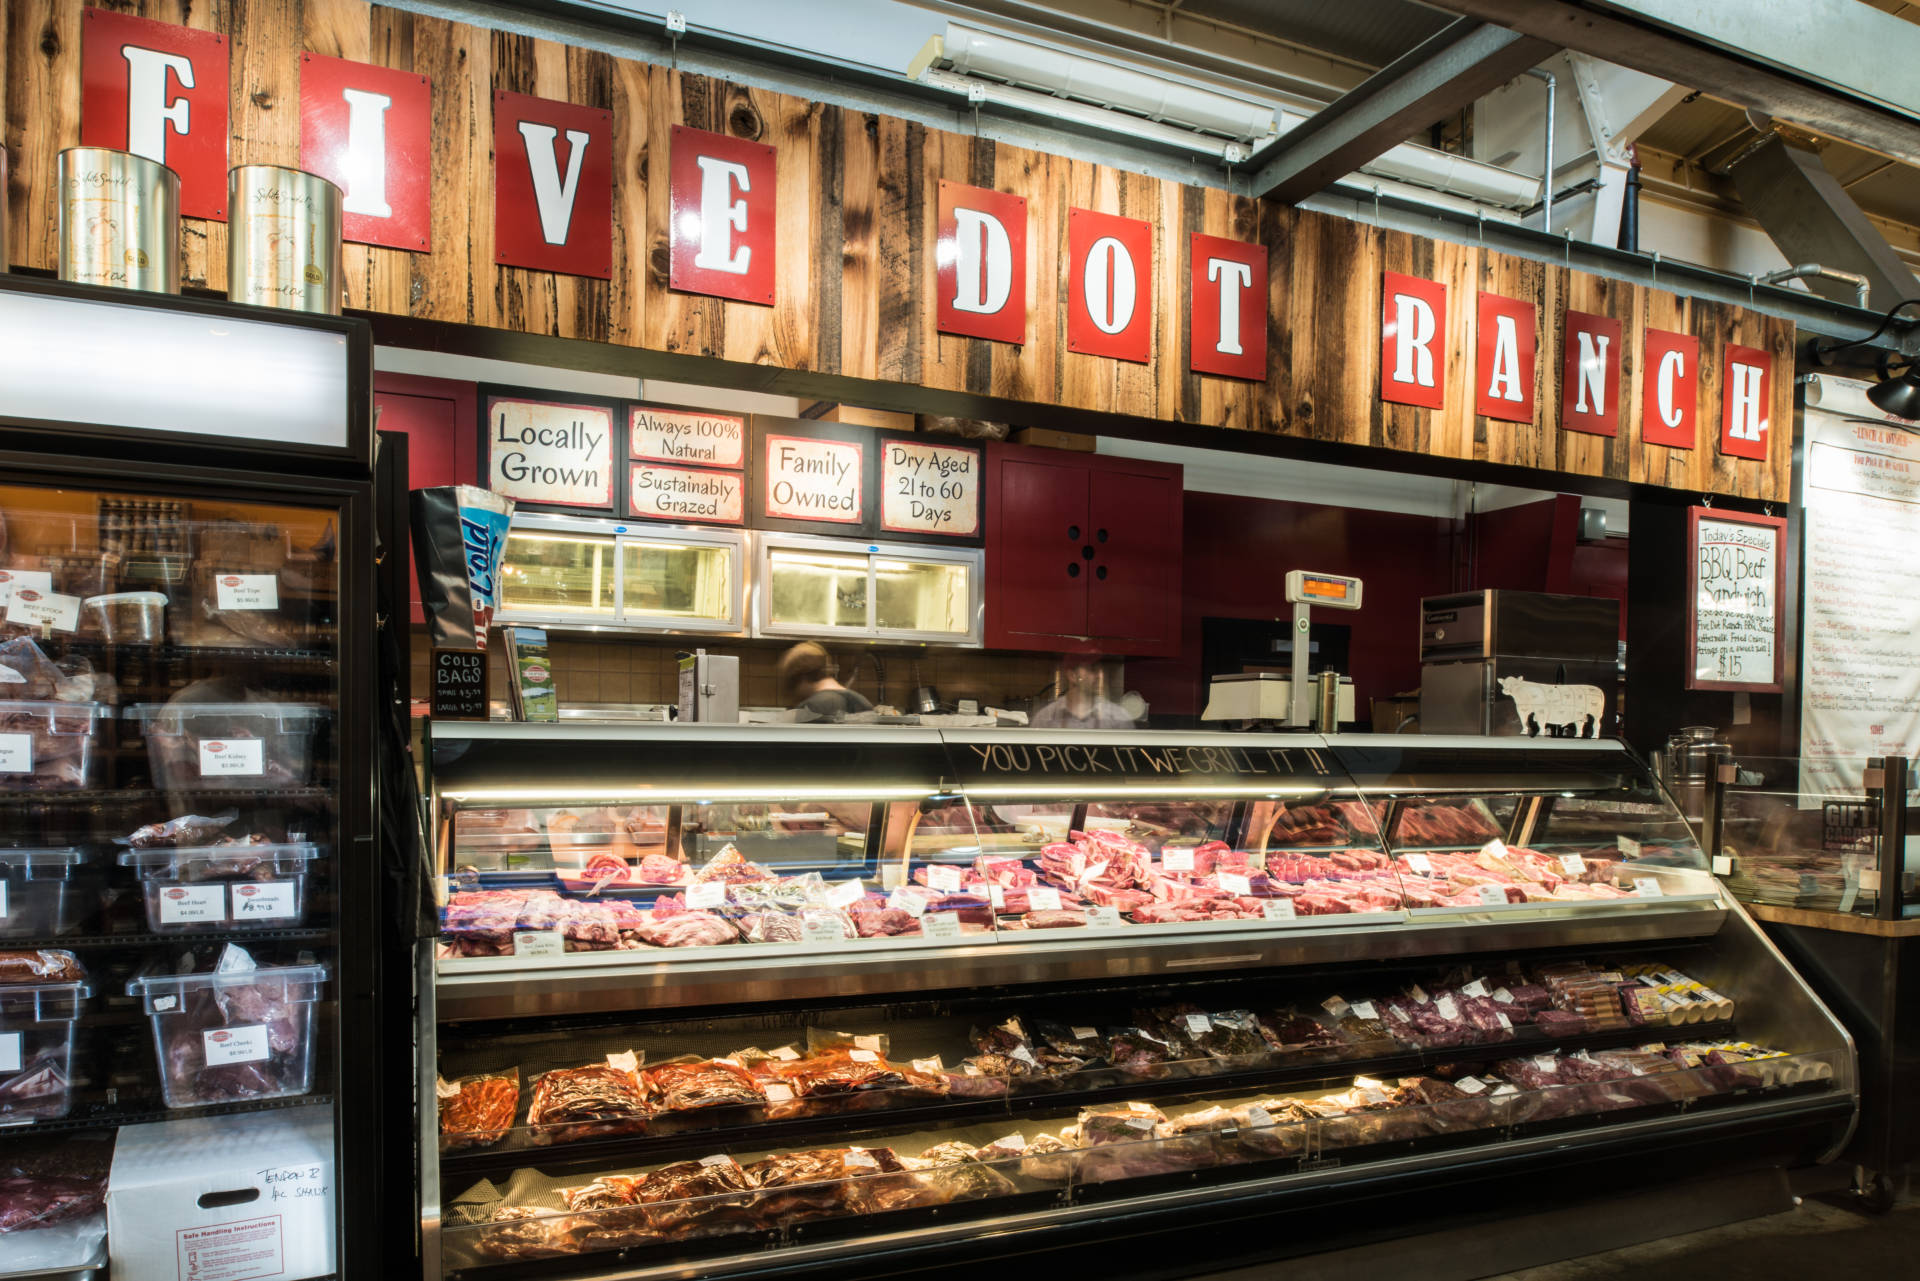 Pick your steak from the meat case and have the team grill it on site.